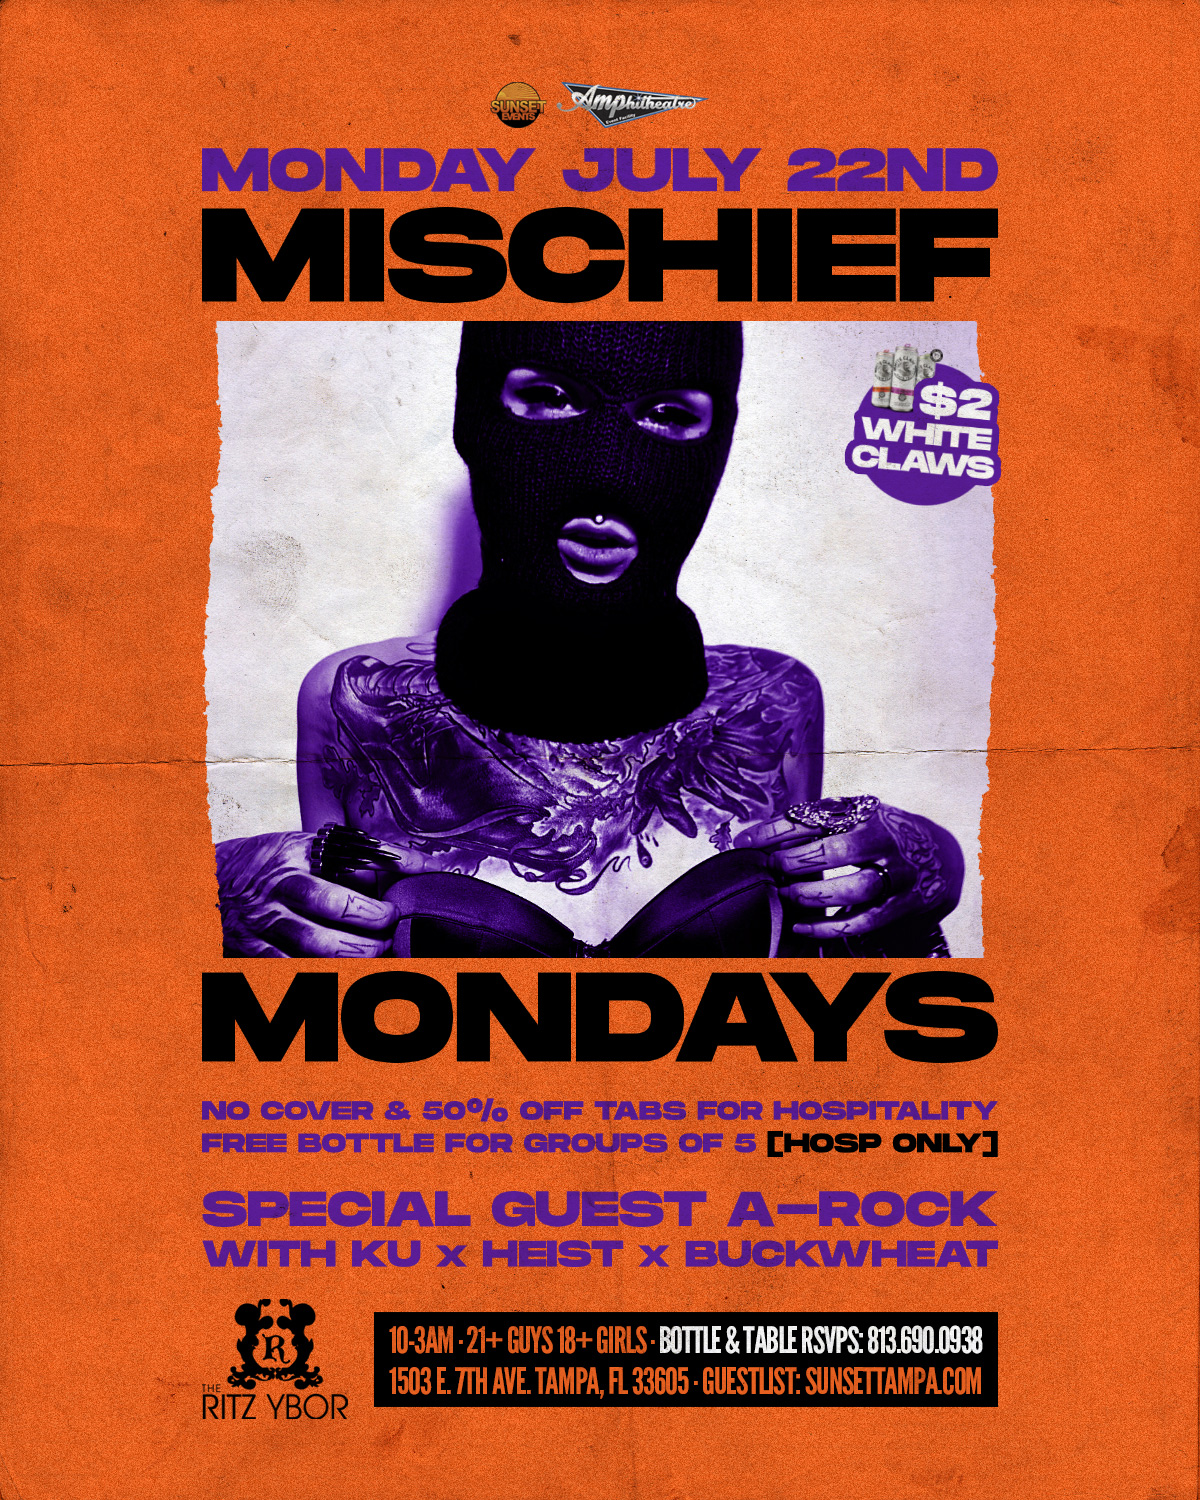 Mischief Mondays – $2 White Claws – Special Guest A-ROCK at The RITZ Ybor – 7/22/2019